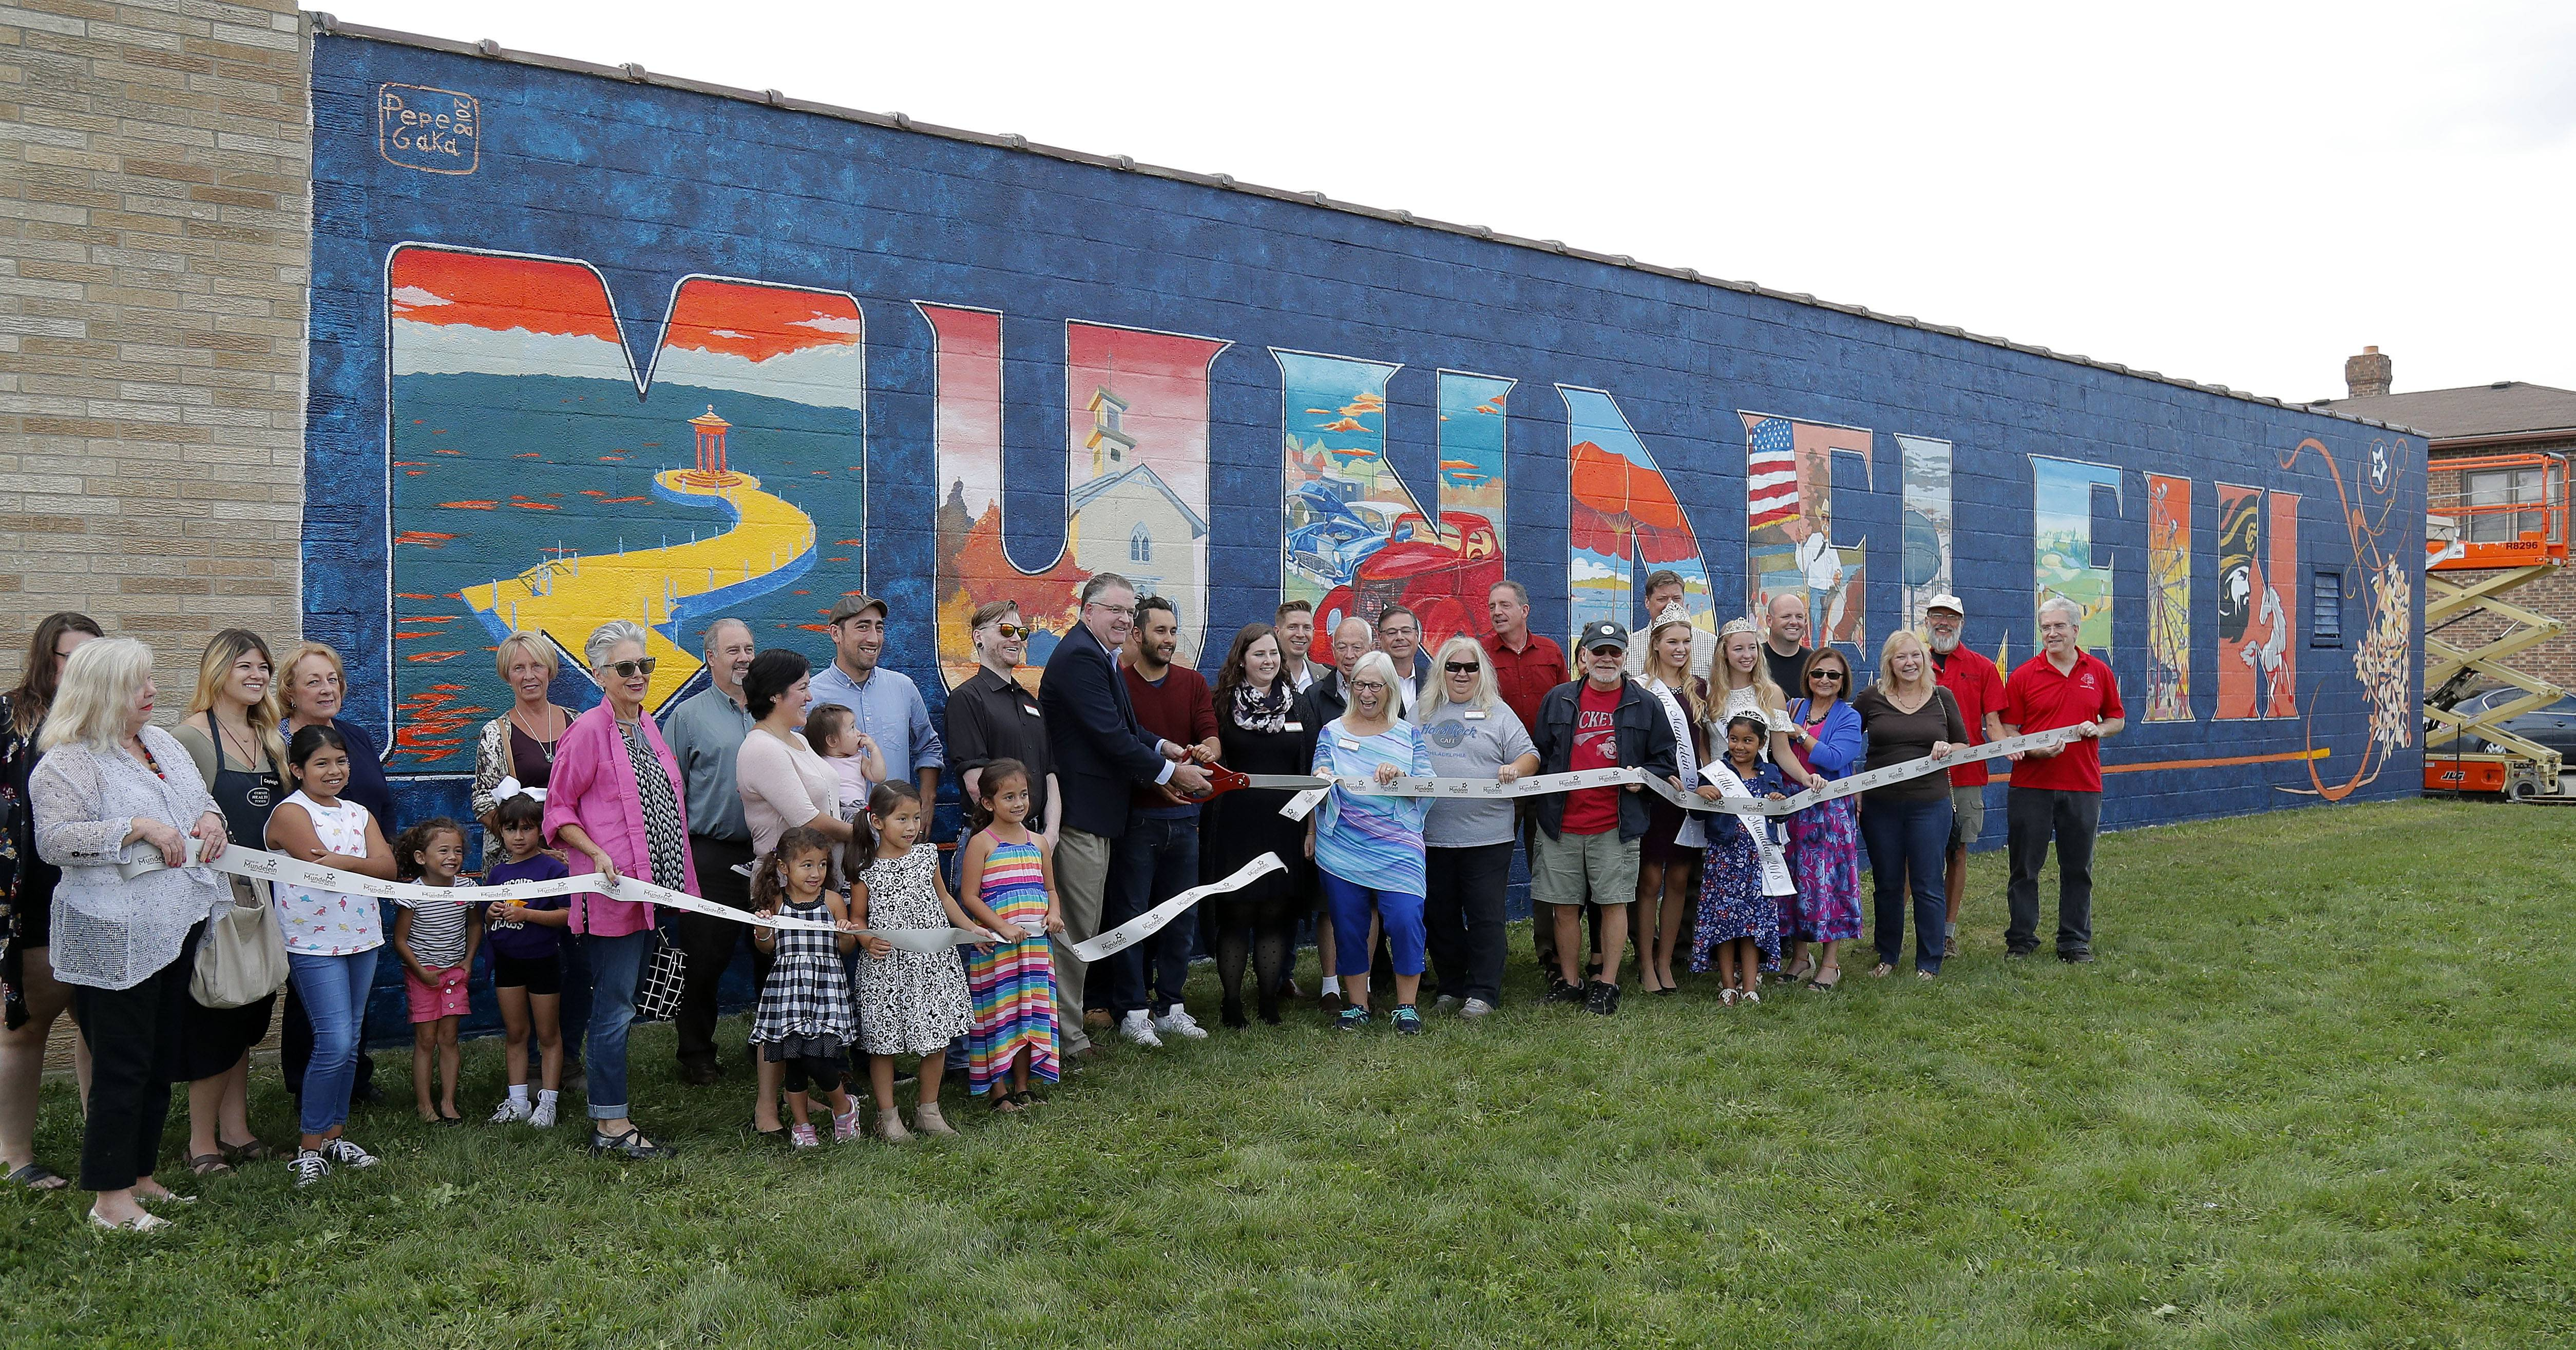 Giant mural unveiled in downtown Mundelein